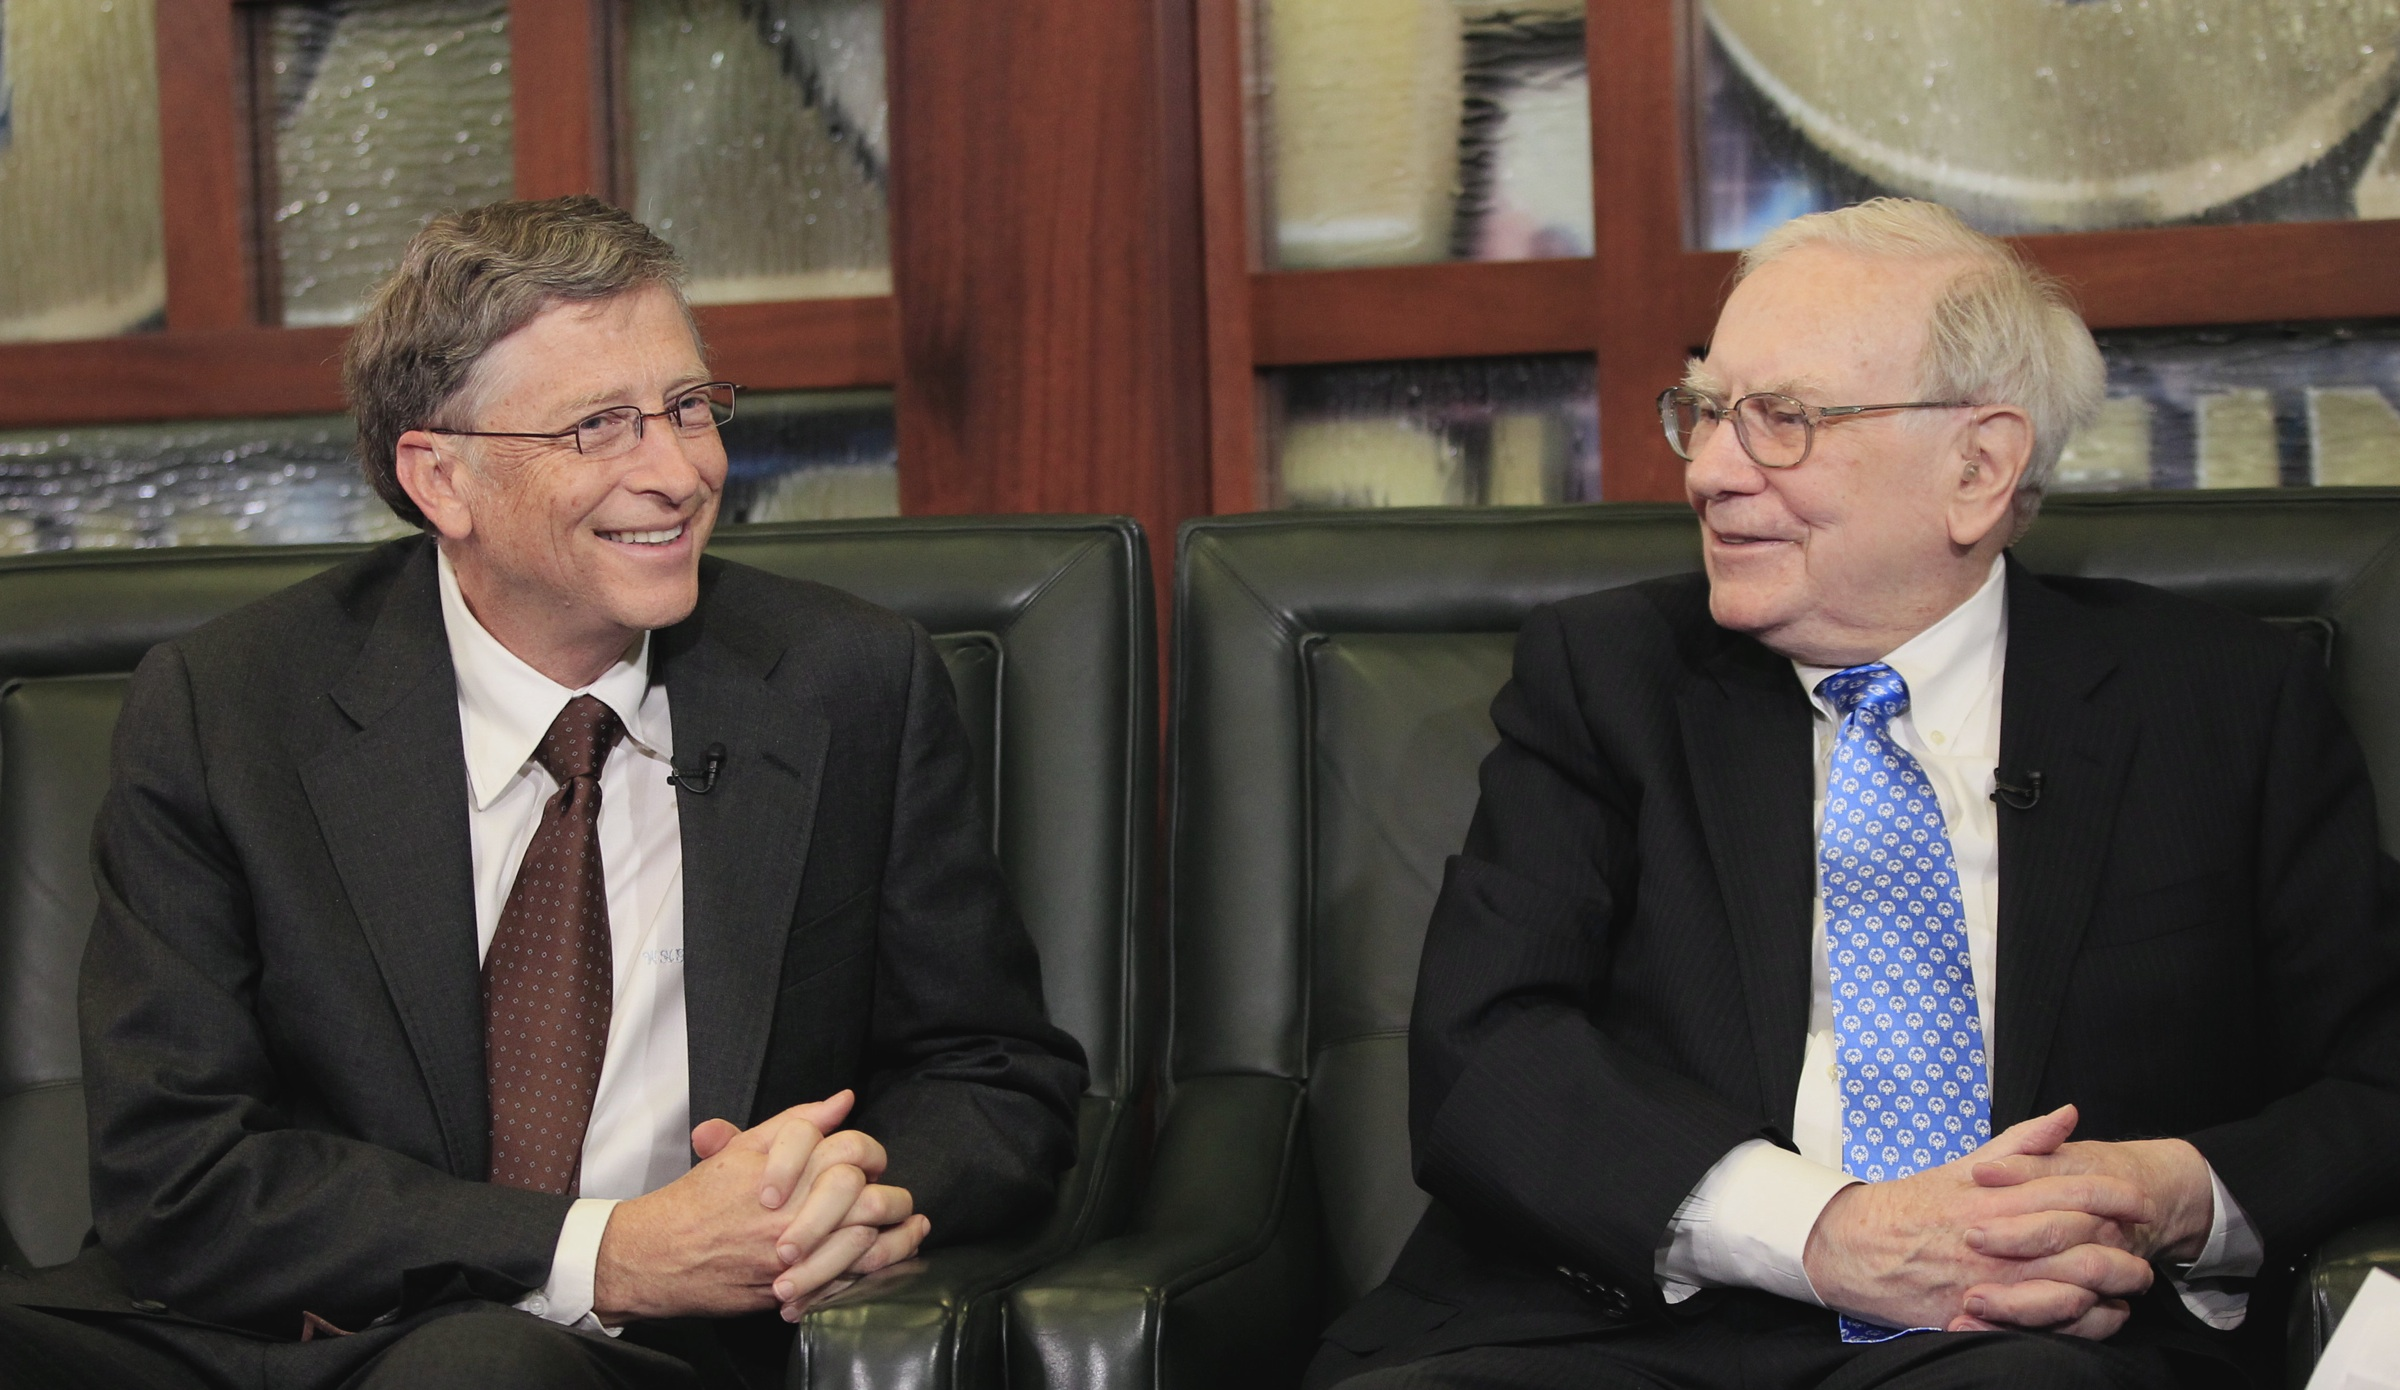 Warren Buffett, right, and Bill Gates share a light moment during an interview with Liz Claman of the Fox Business Network, in Omaha, Neb., Monday, May 6, 2013. The Berkshire Hathaway shareholders meeting took place over the weekend. (AP Photo/Nati Harnik)